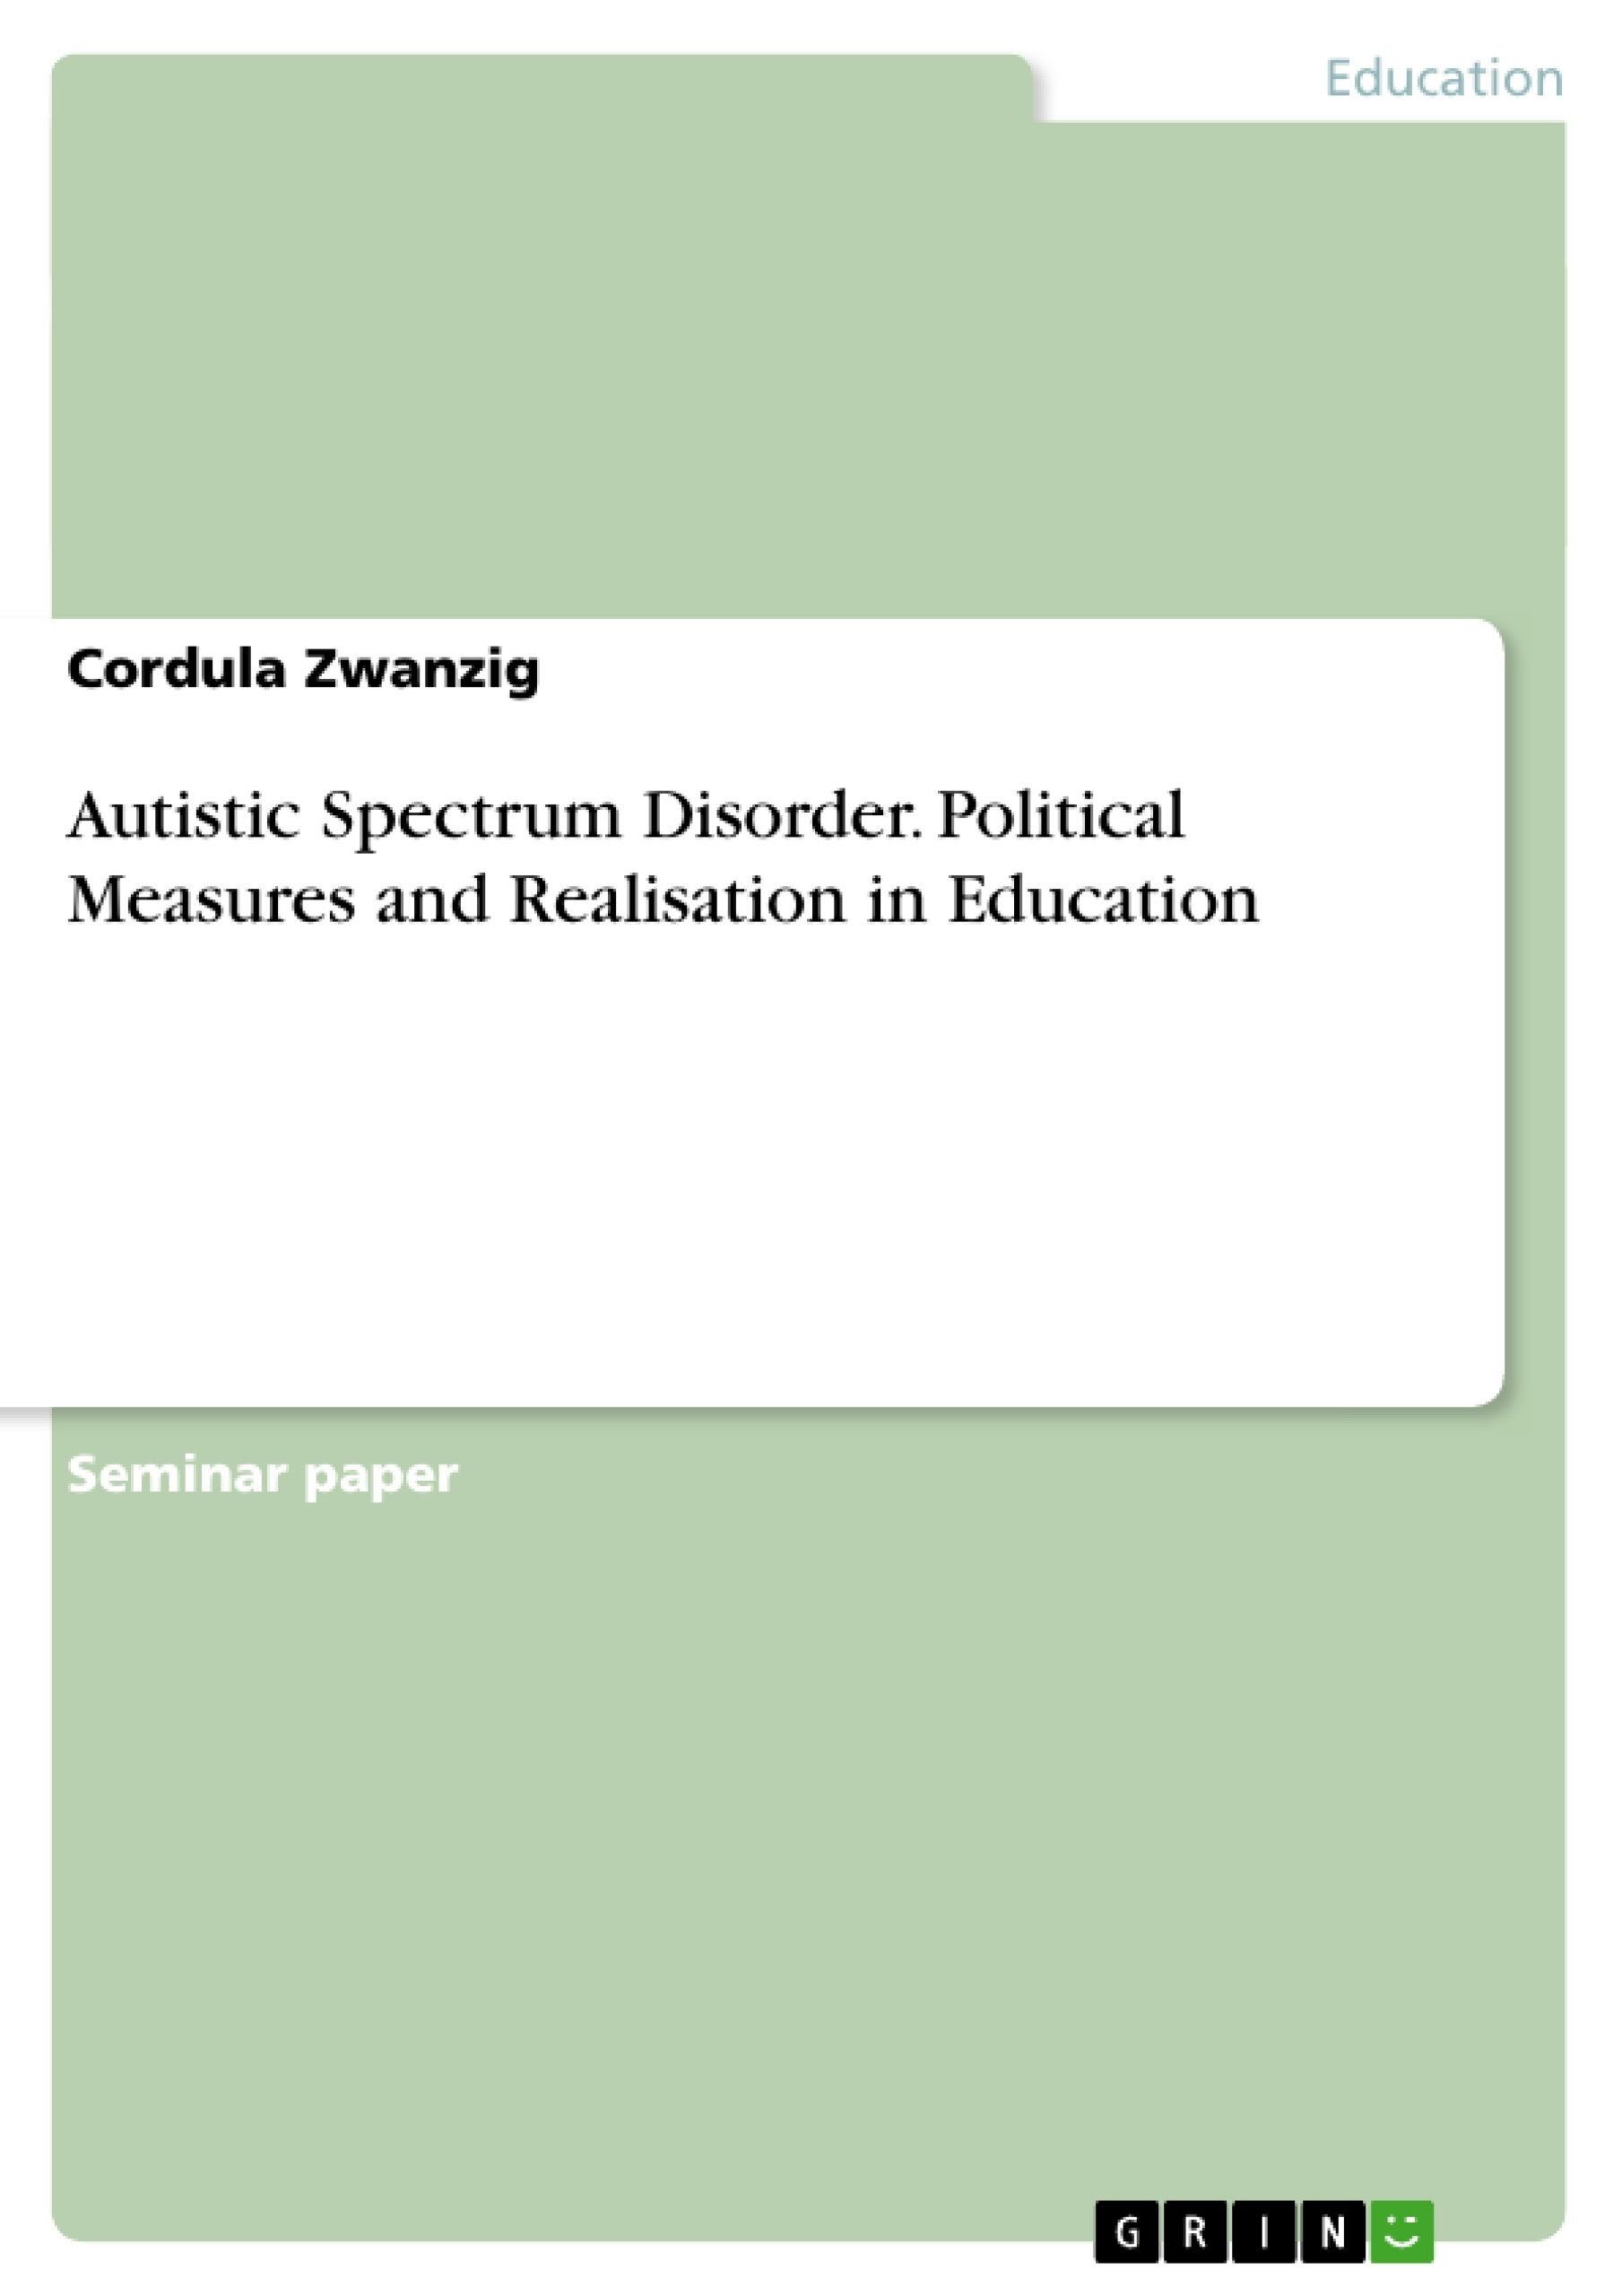 Title: Autistic Spectrum Disorder. Political Measures and Realisation in Education